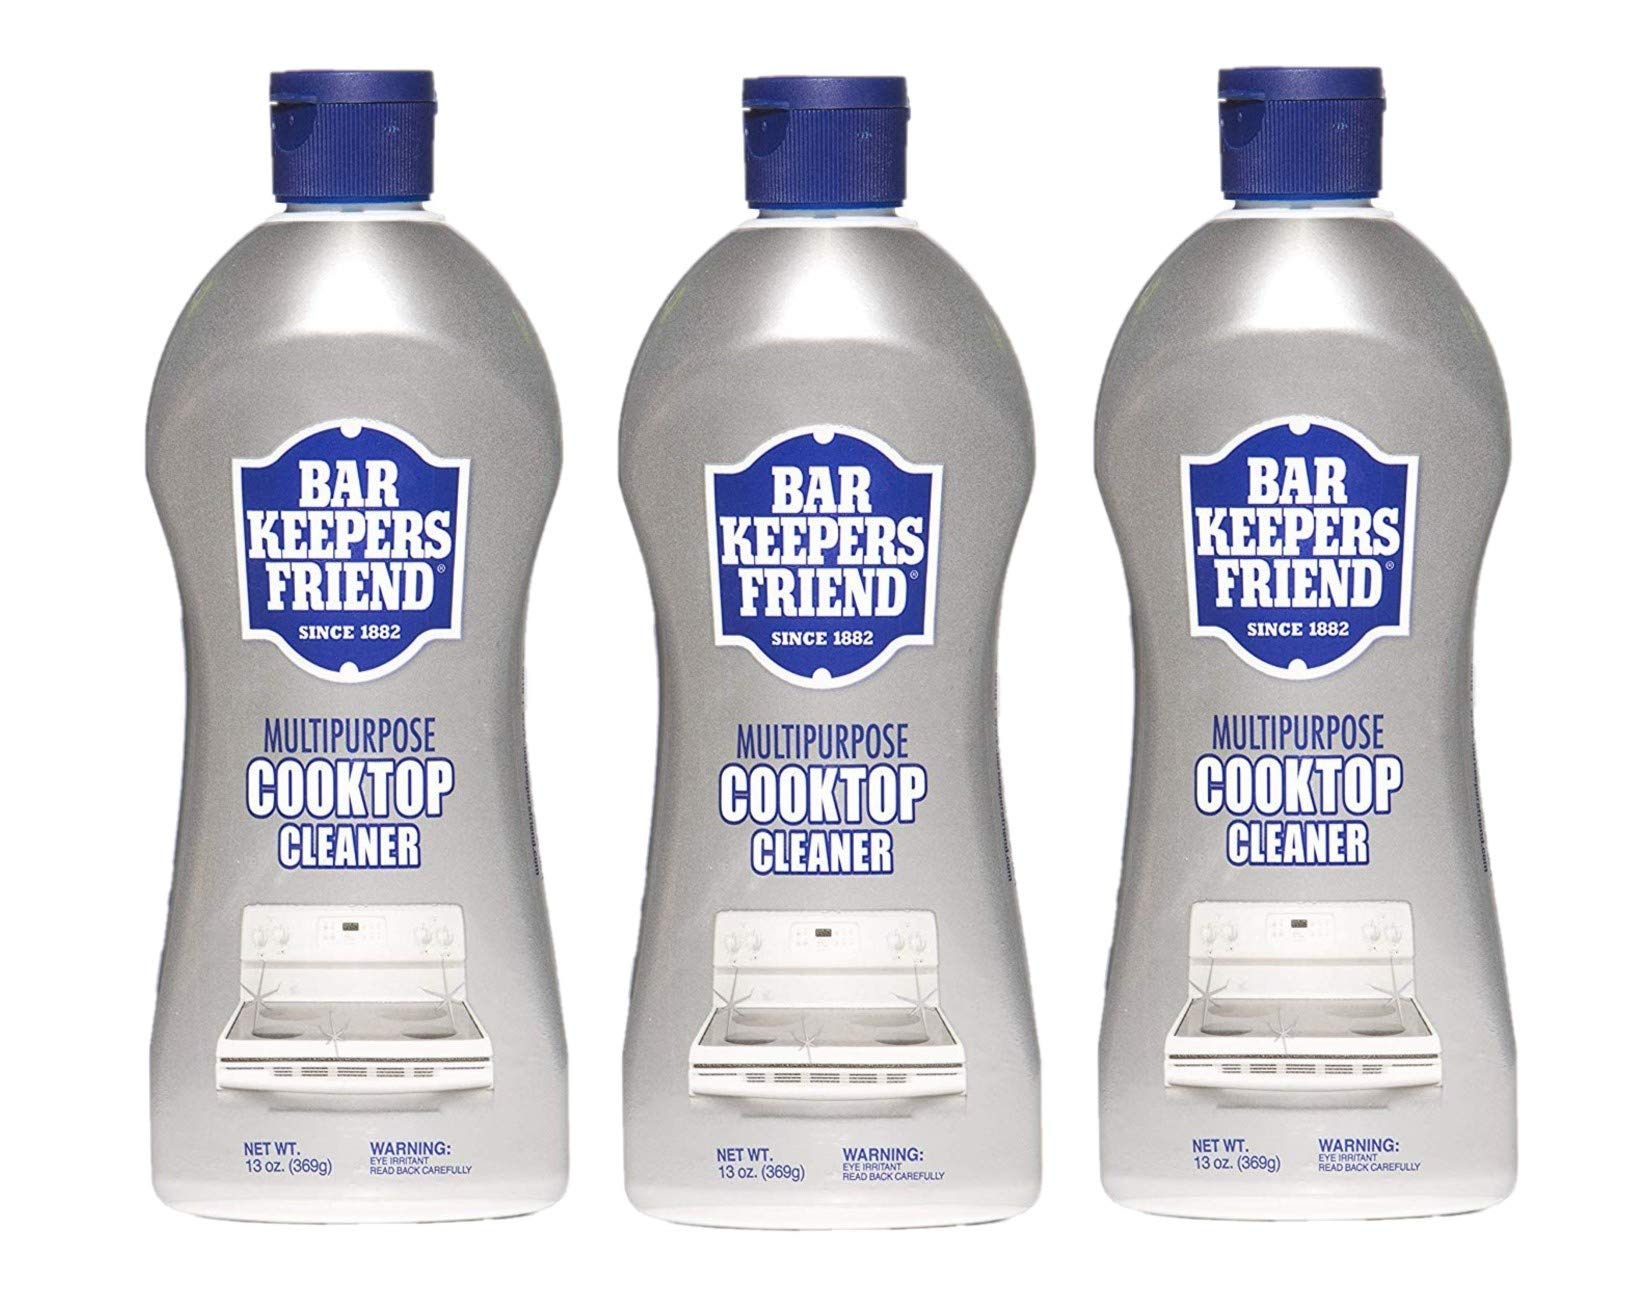 Bar Keepers Friend Multipurpose Cooktop Cleaner (13 oz) - Liquid Stovetop Cleanser - Safe for Use on Glass Ceramic Cooking Surfaces, Copper, Brass, Chrome, and Stainless Steel - Pack of 3 by  Bar Keepers Friend (Image #1)